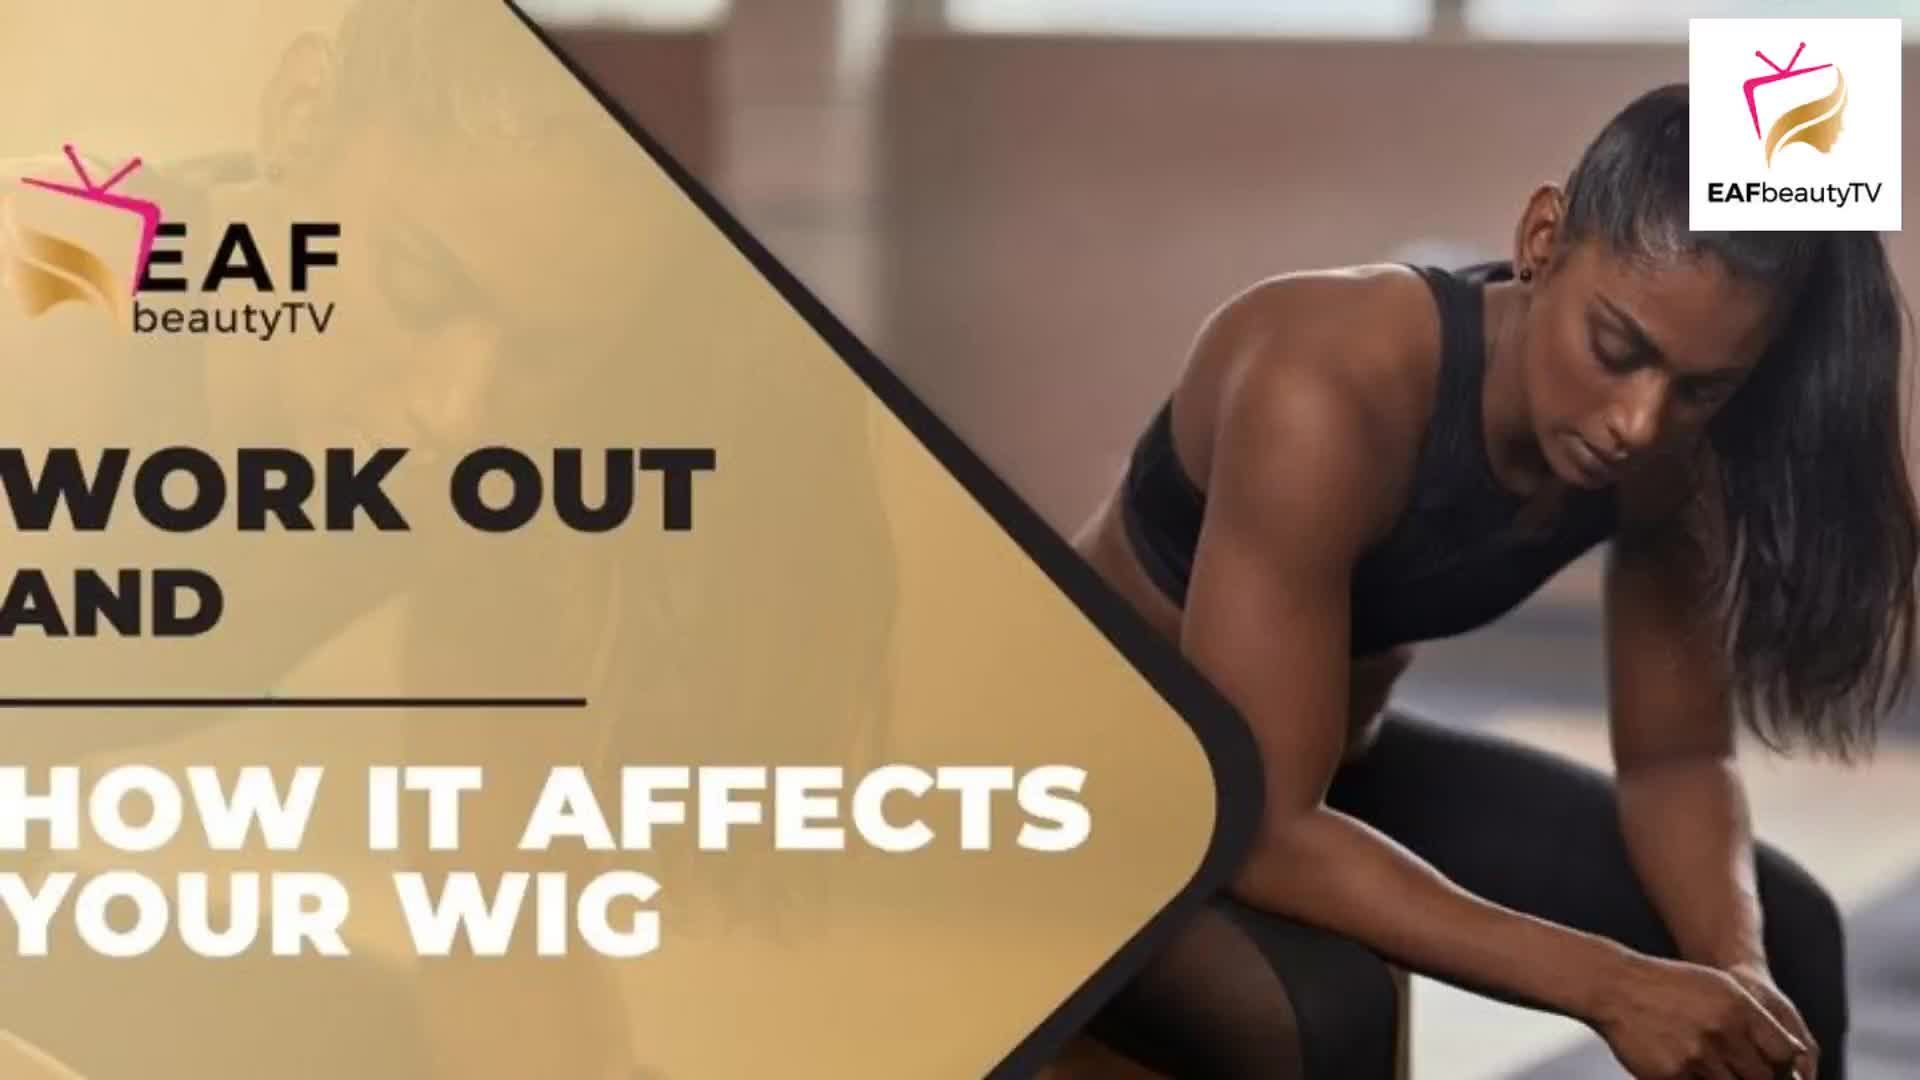 Work out and how it affects your wig